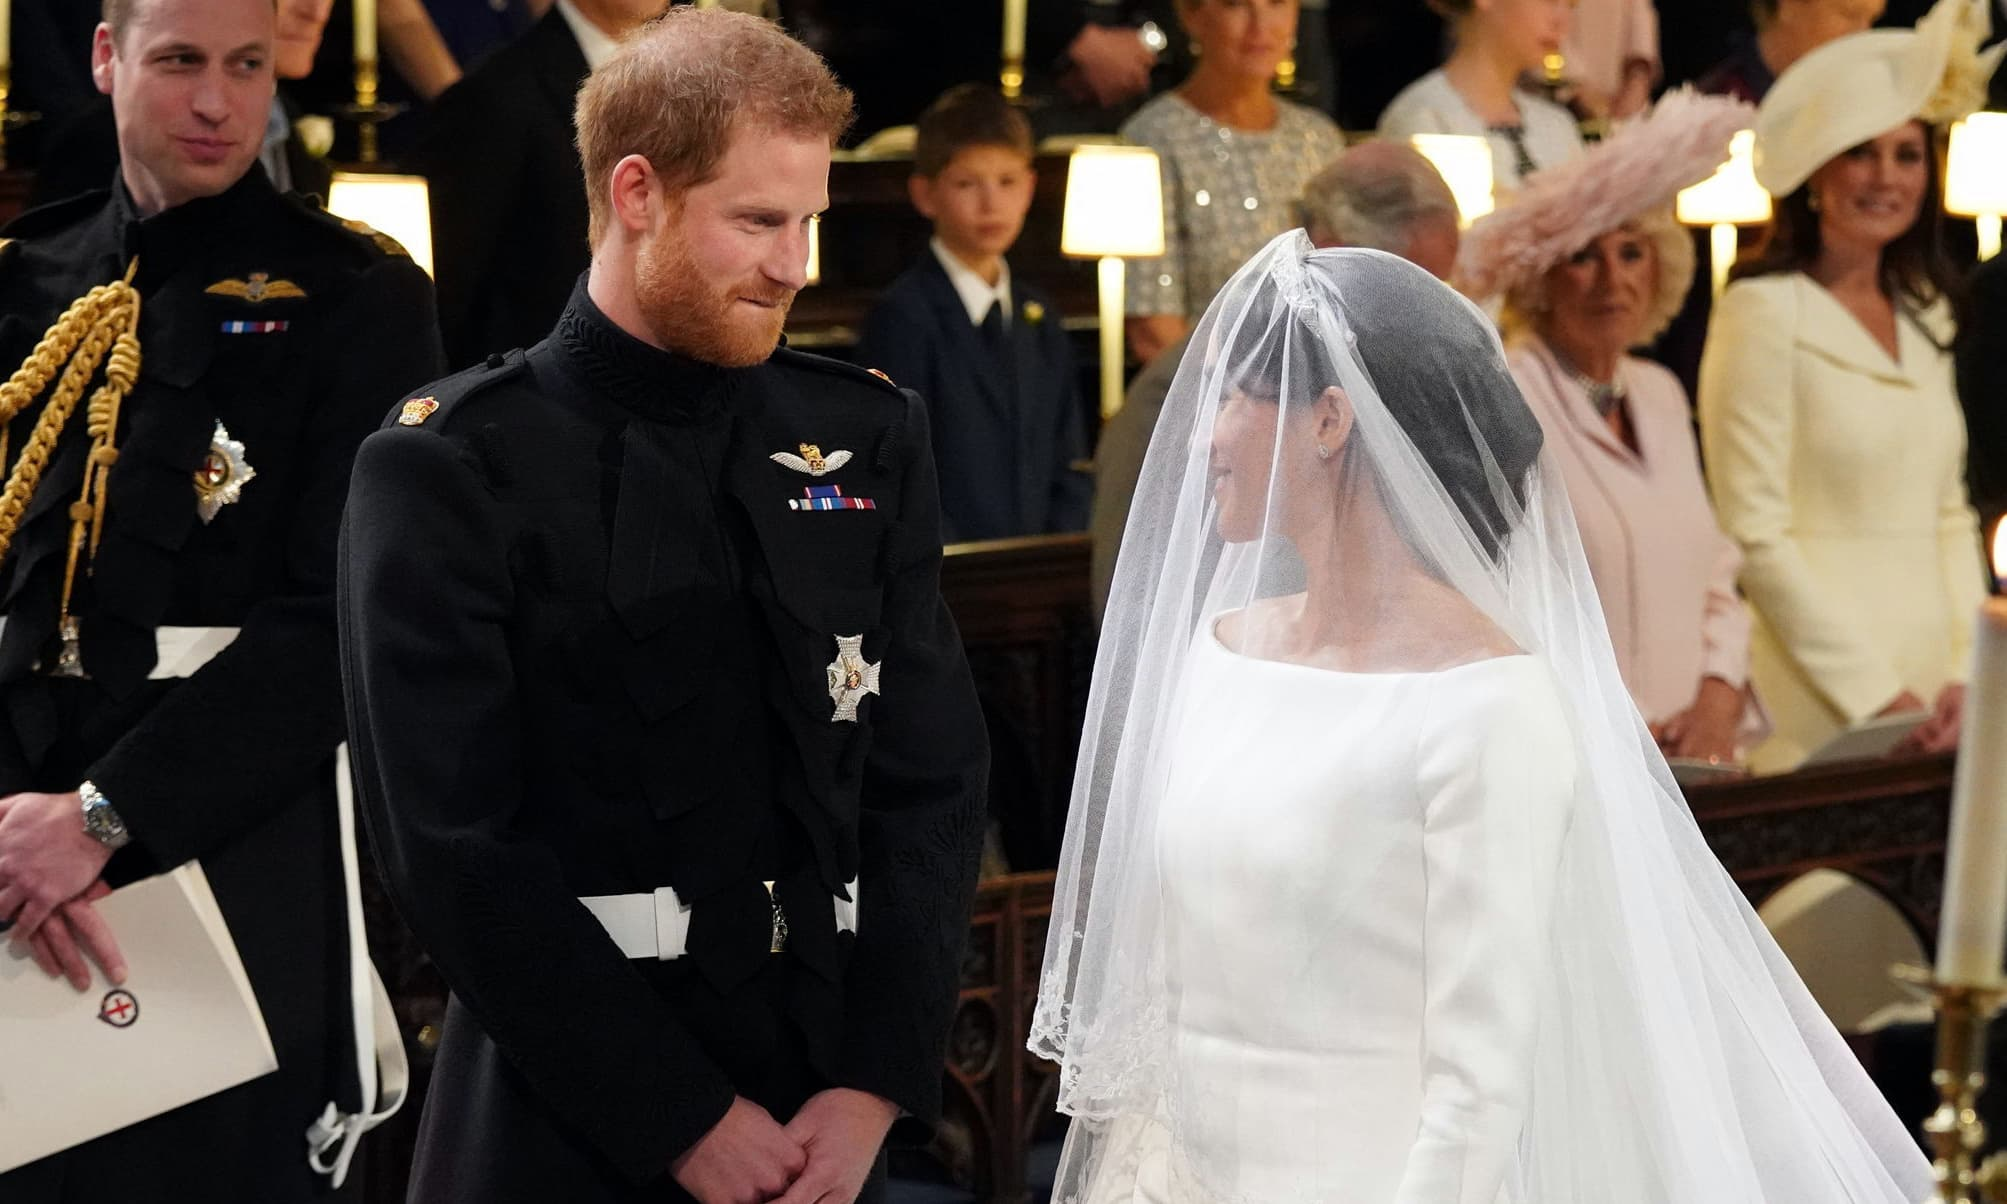 Prince Harry and Markle share a glance during the wedding ceremony — AP